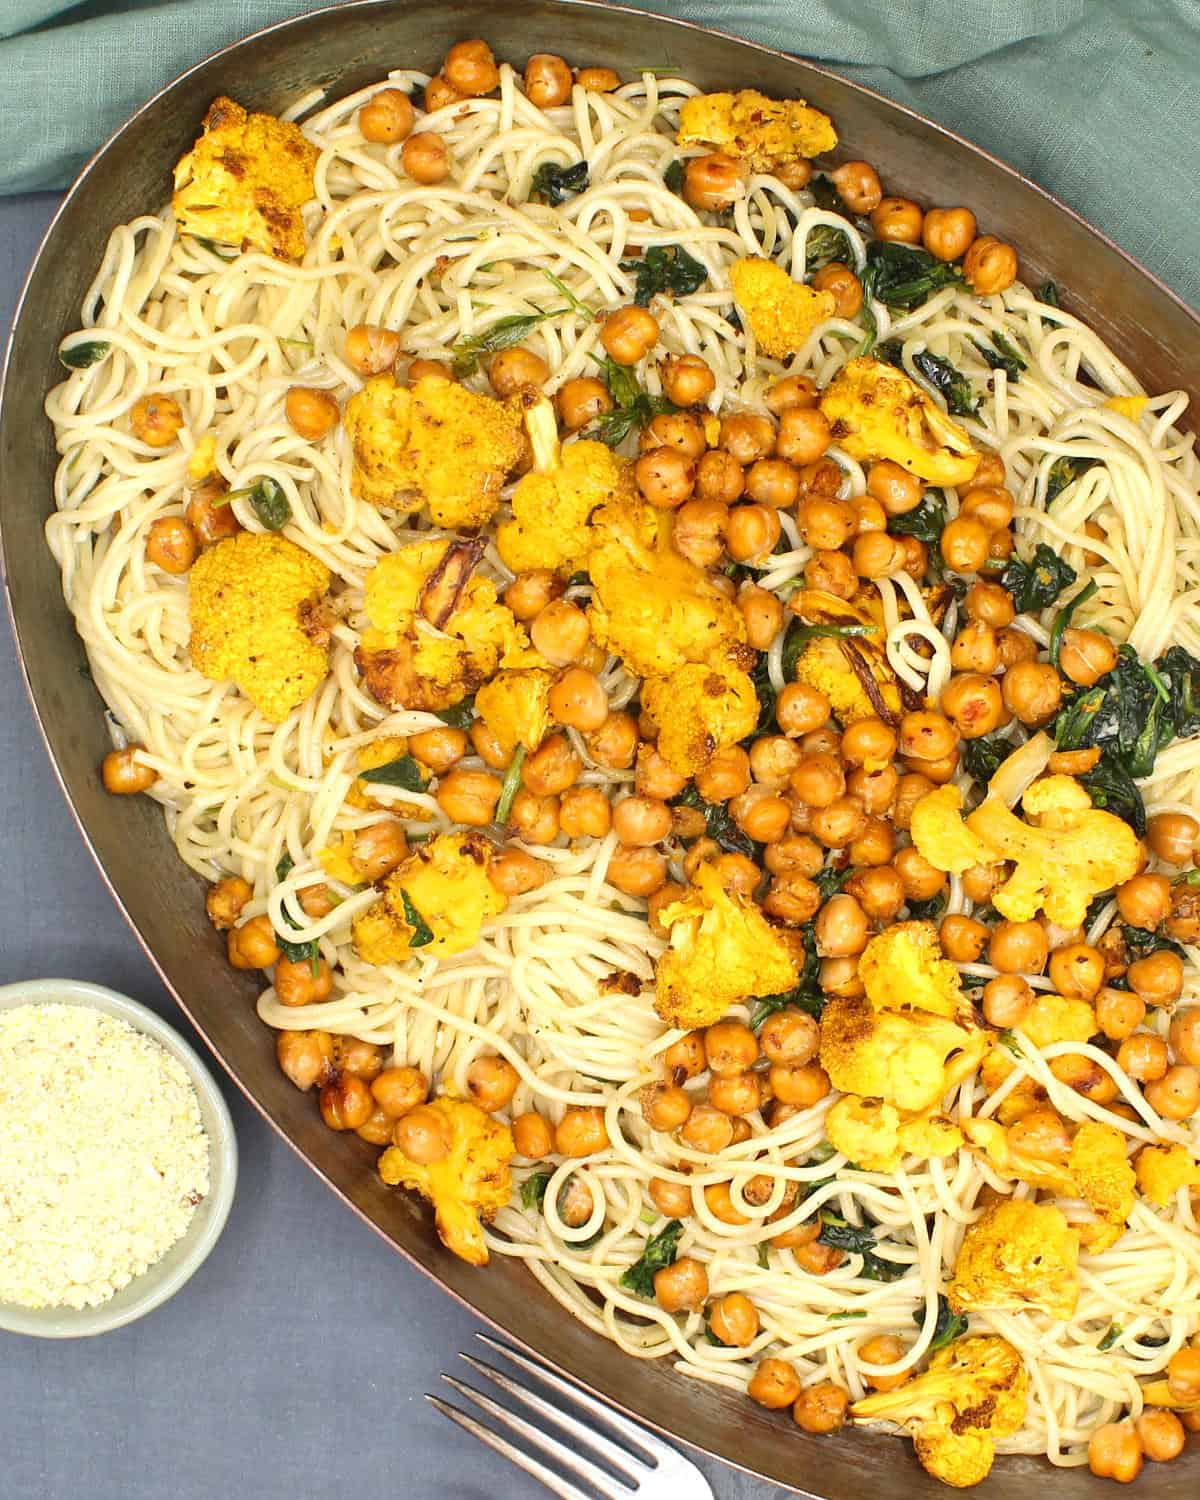 Overhead shot of a pan with spaghetti tossed with roasted chickpeas, cauliflower and spinach with vegan cashew parmesan on the side.